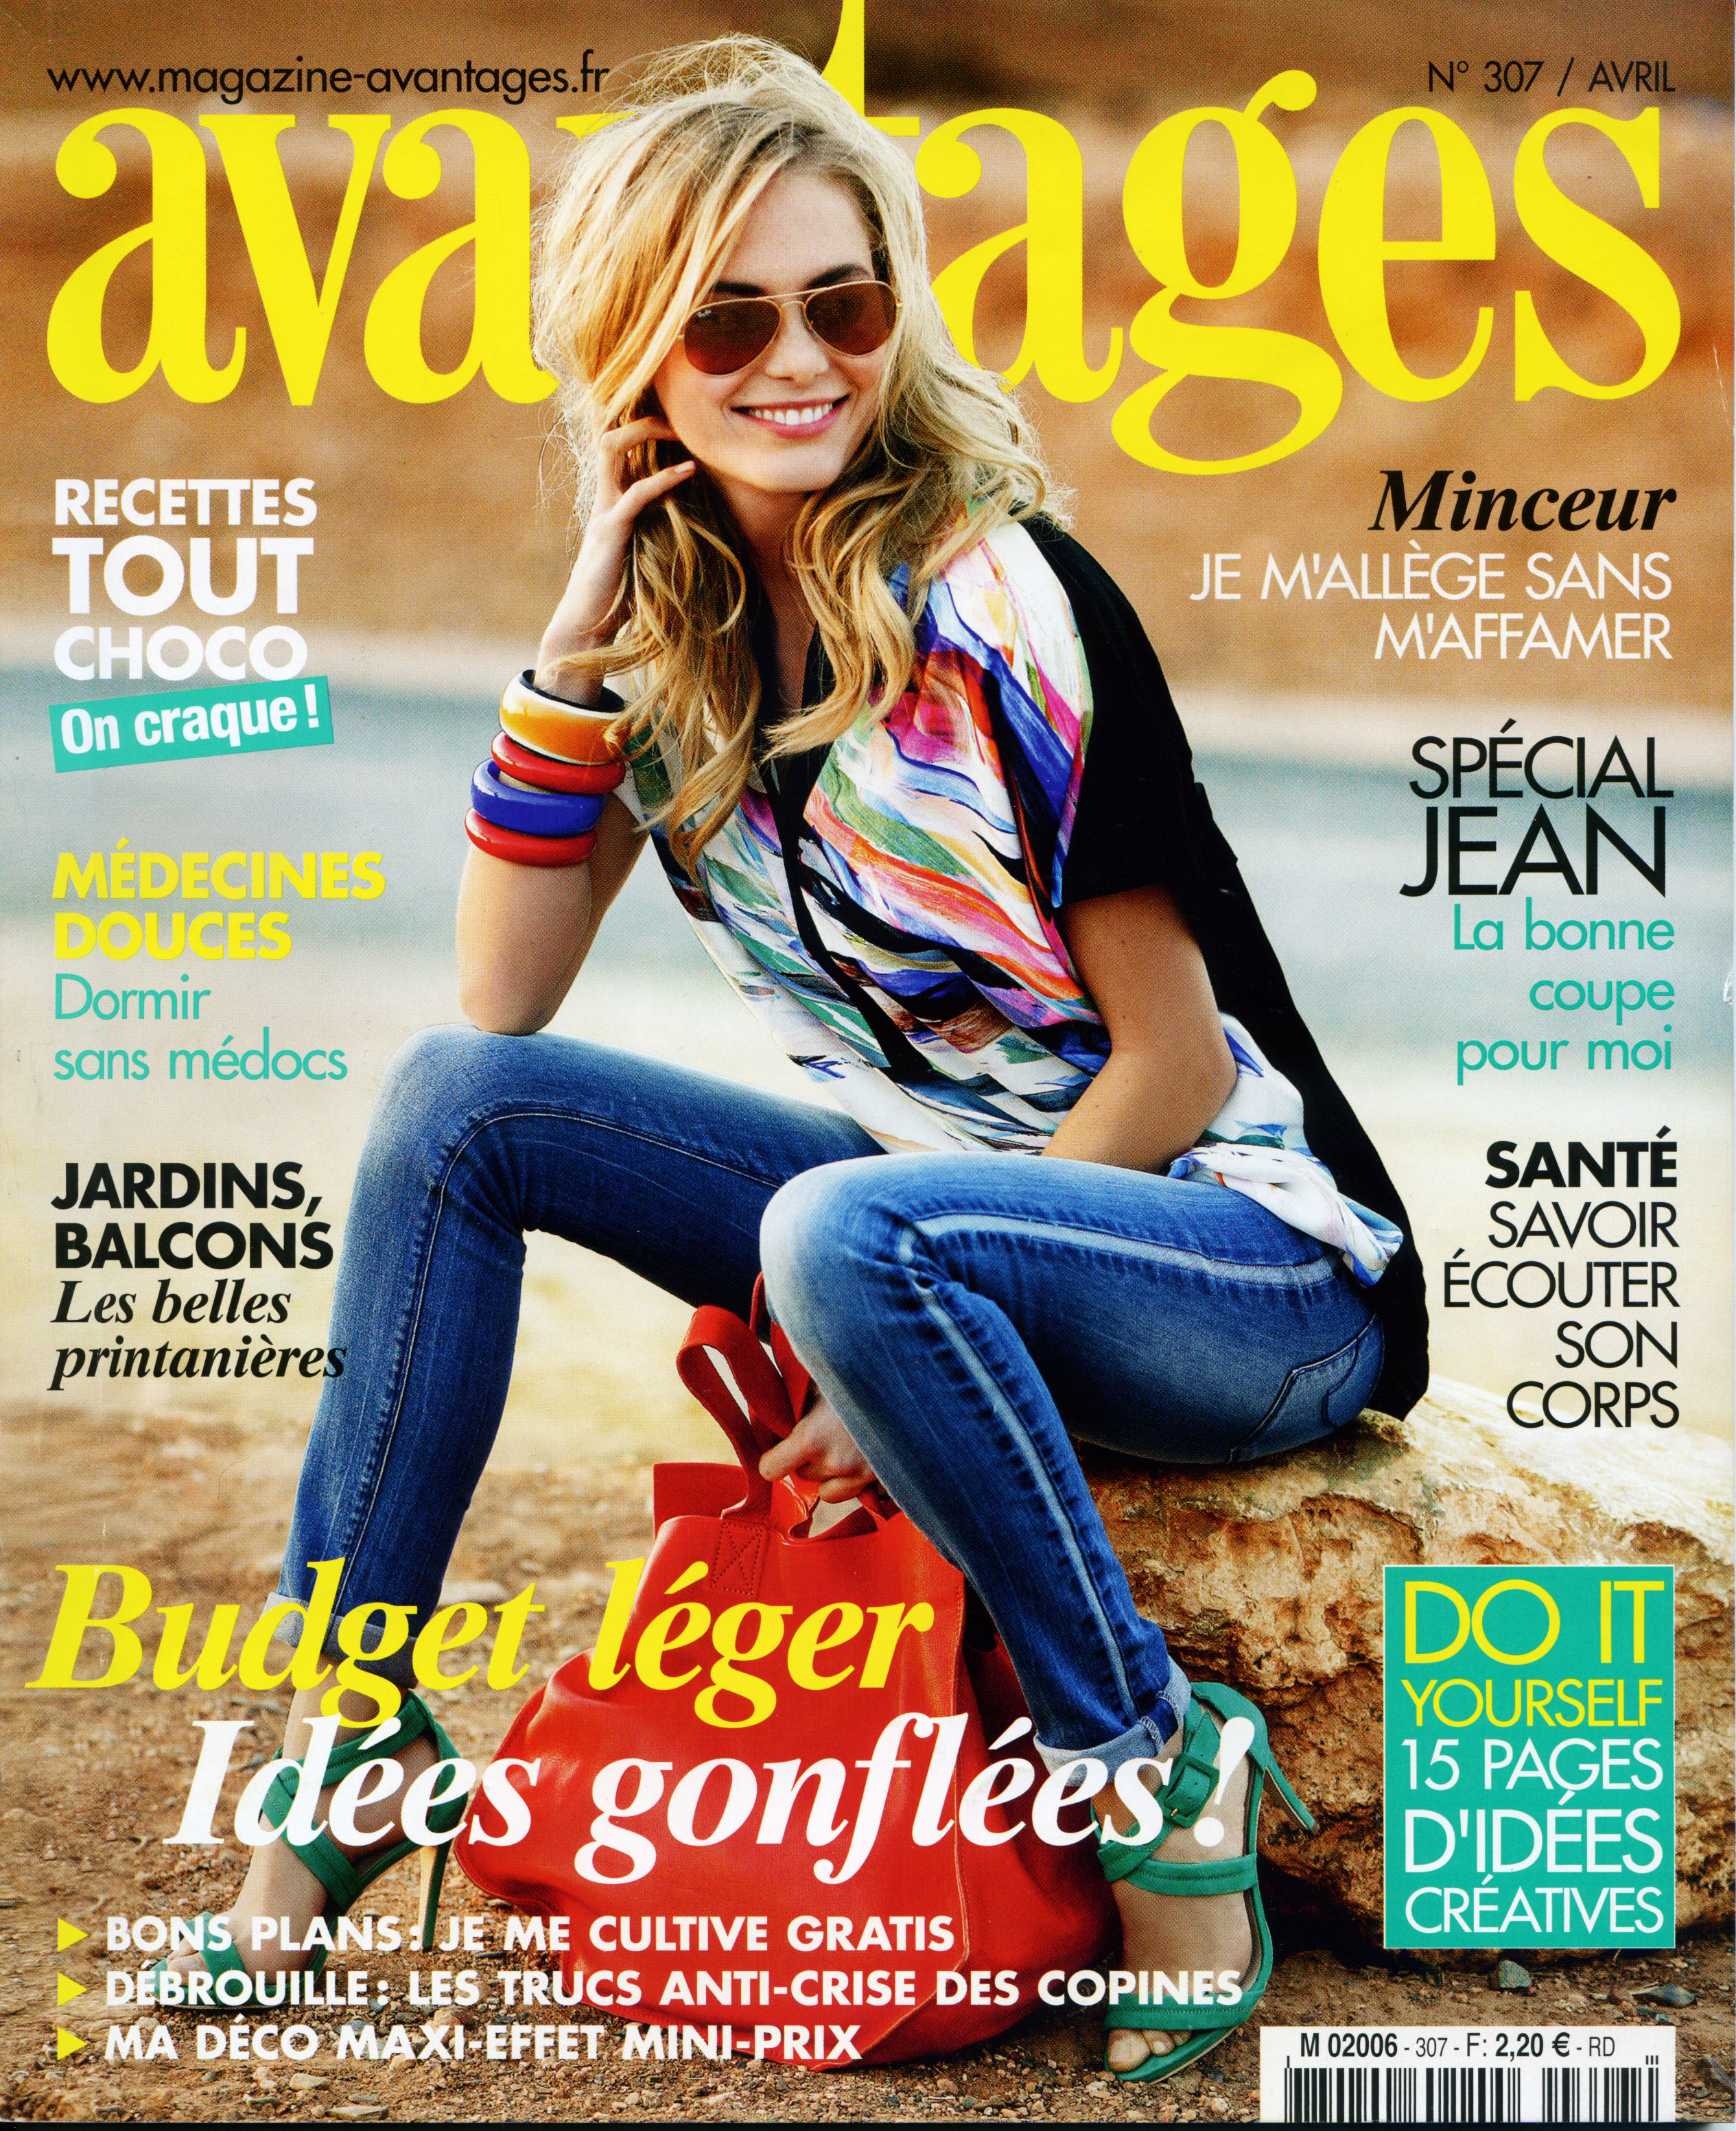 mpm-avantages-cover-avril14